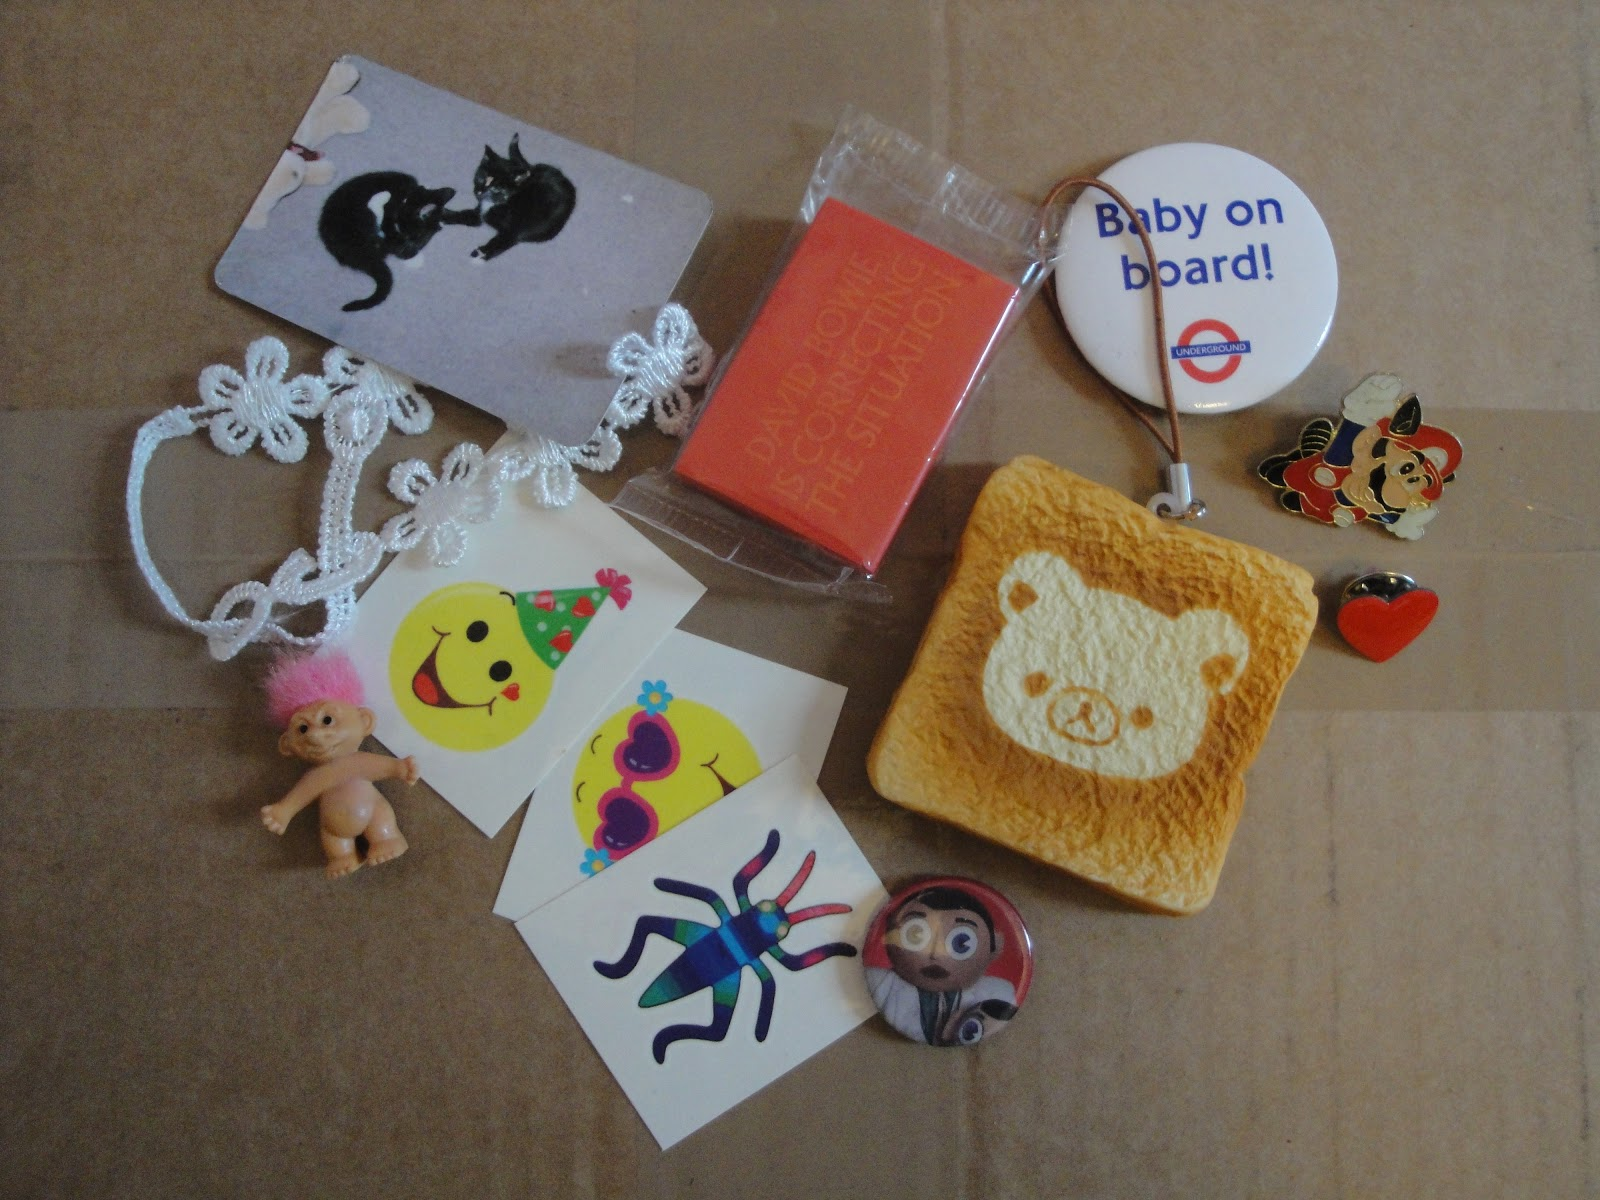 An assortment of items including a photo of two cats, a small troll doll, several badges, a white flowery bracelet, temporary tattoos and a red eraser.